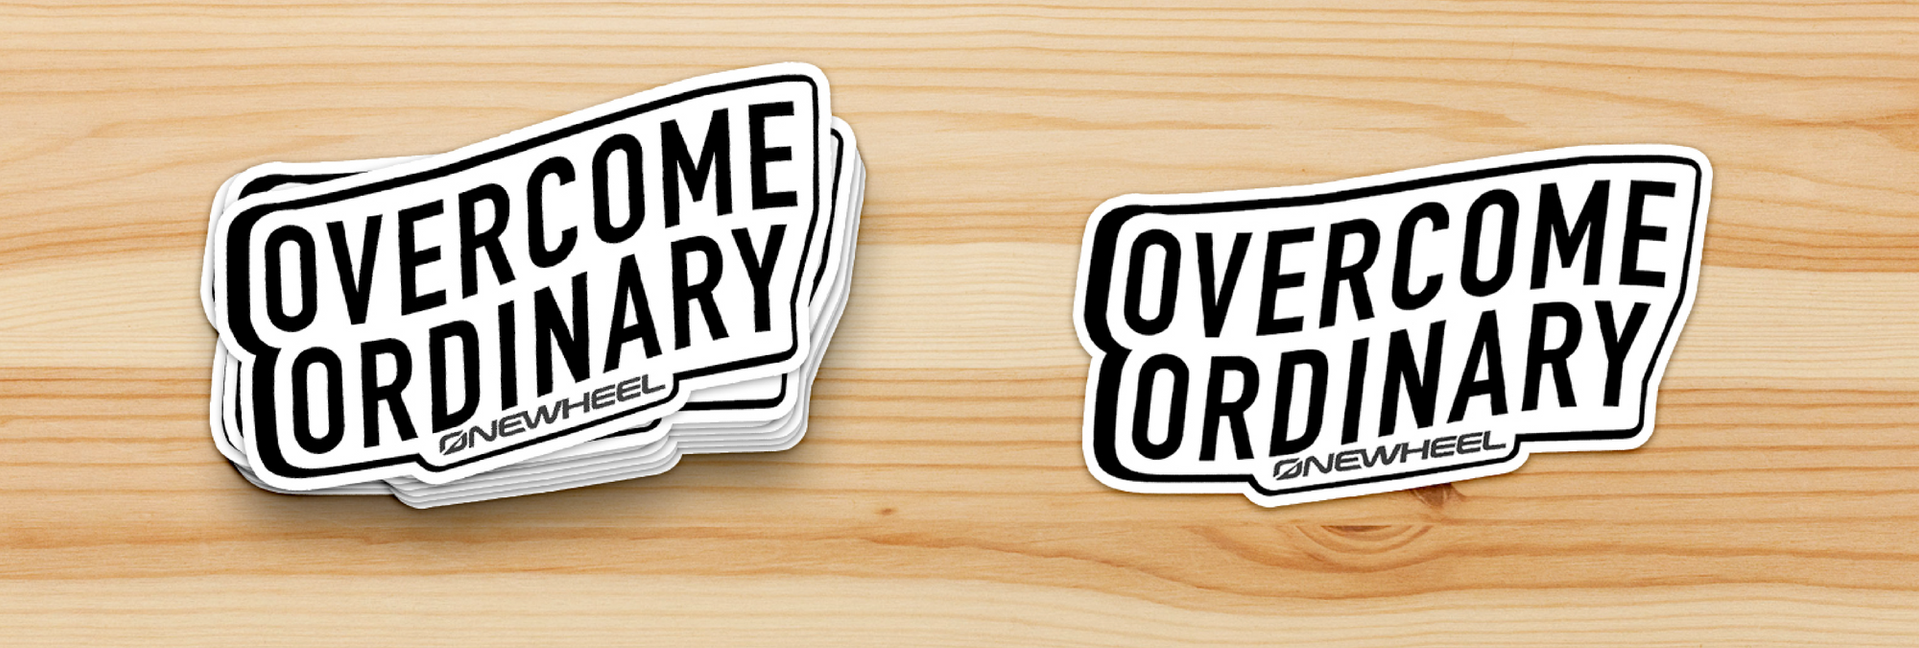 Overcome Ordinary Stickers by Sarah Mac